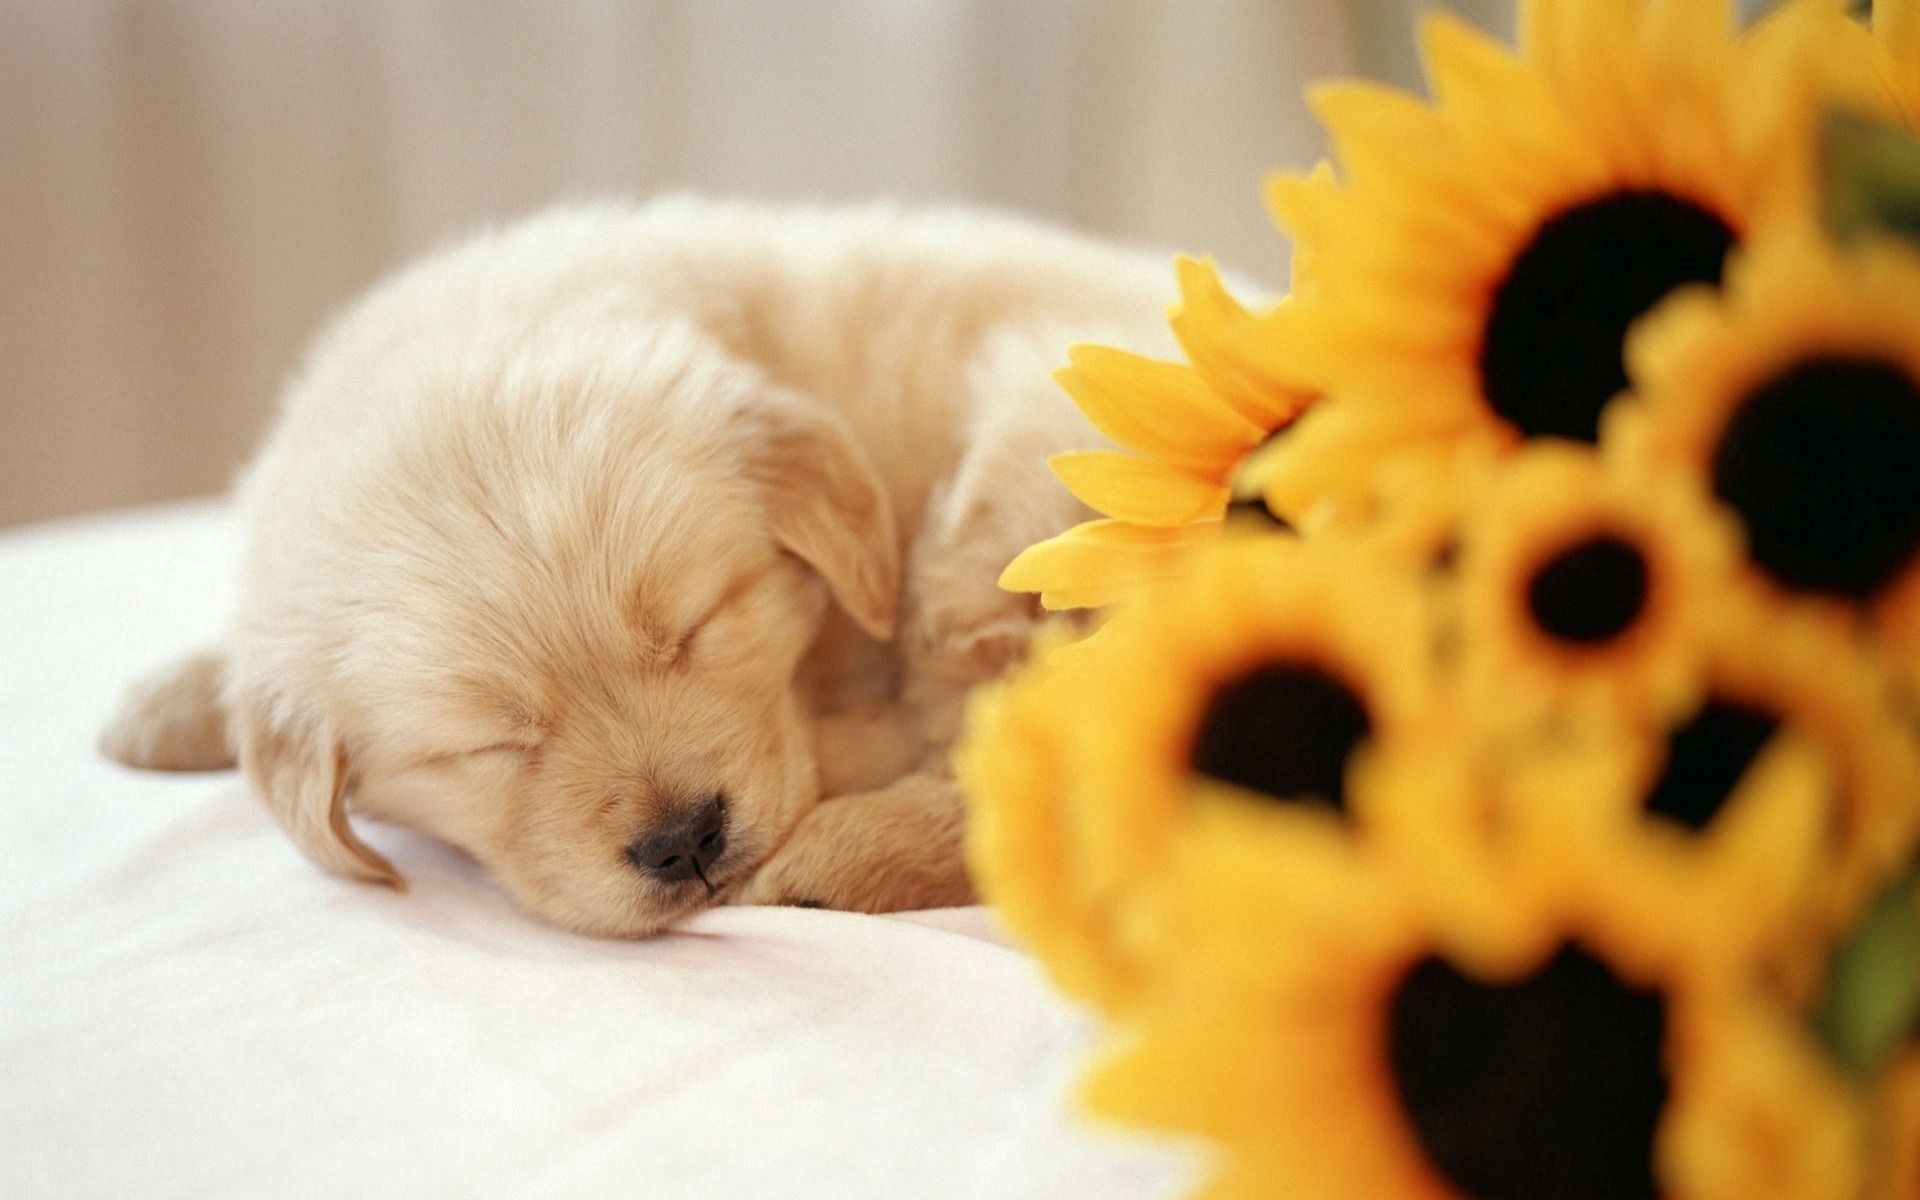 149096 download wallpaper Animals, Dog, Puppy, Flower, Muzzle, Sleep, Dream screensavers and pictures for free